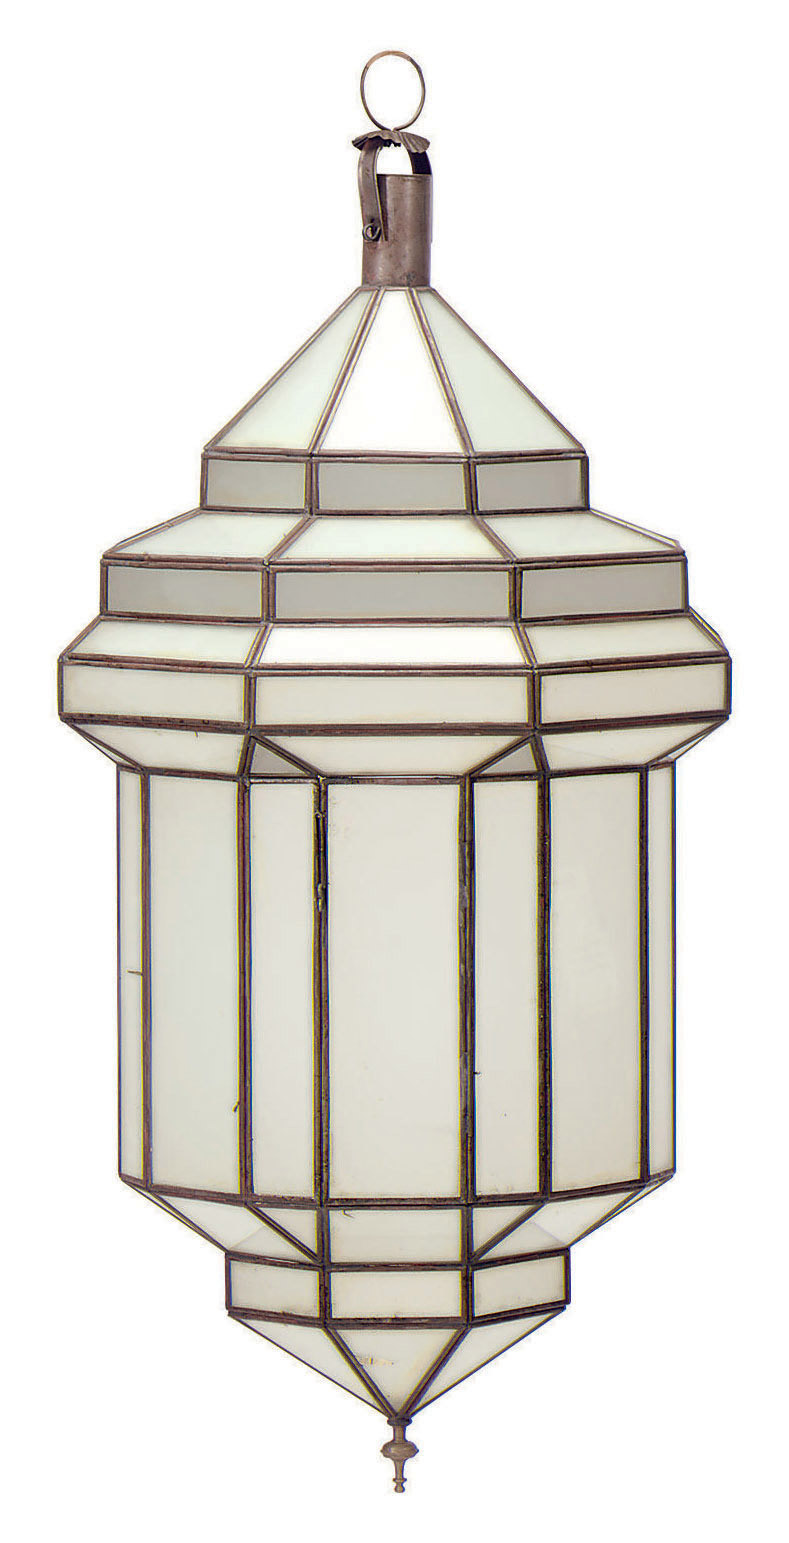 A PAIR OF FROSTED GLASS AND METAL OCTAGONAL LANTERNS,